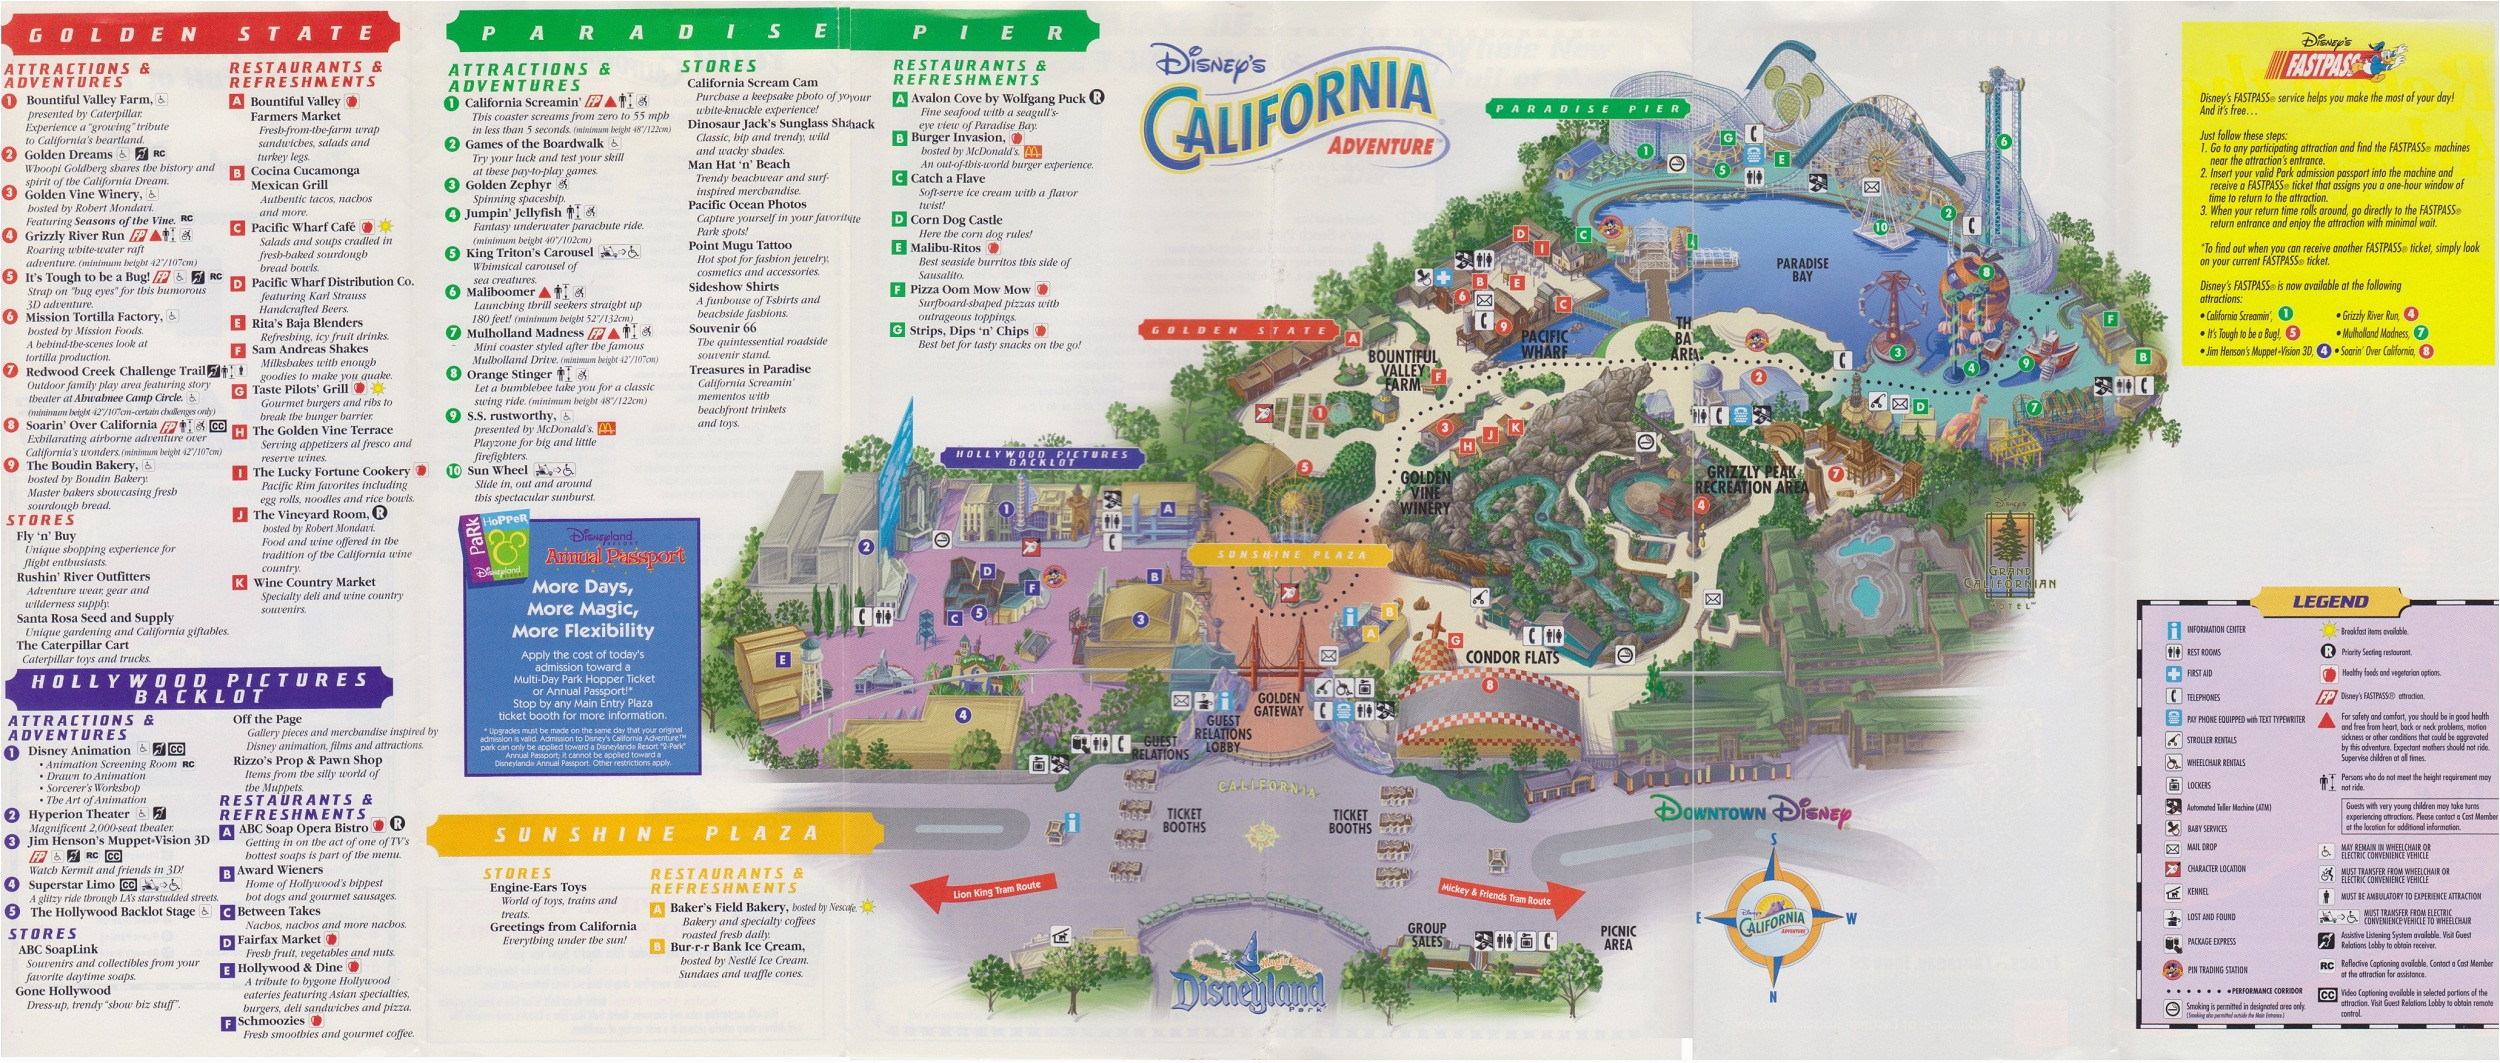 Map Of California Adventure California Adventure Map Pdf Disney California Adventure Map Pdf